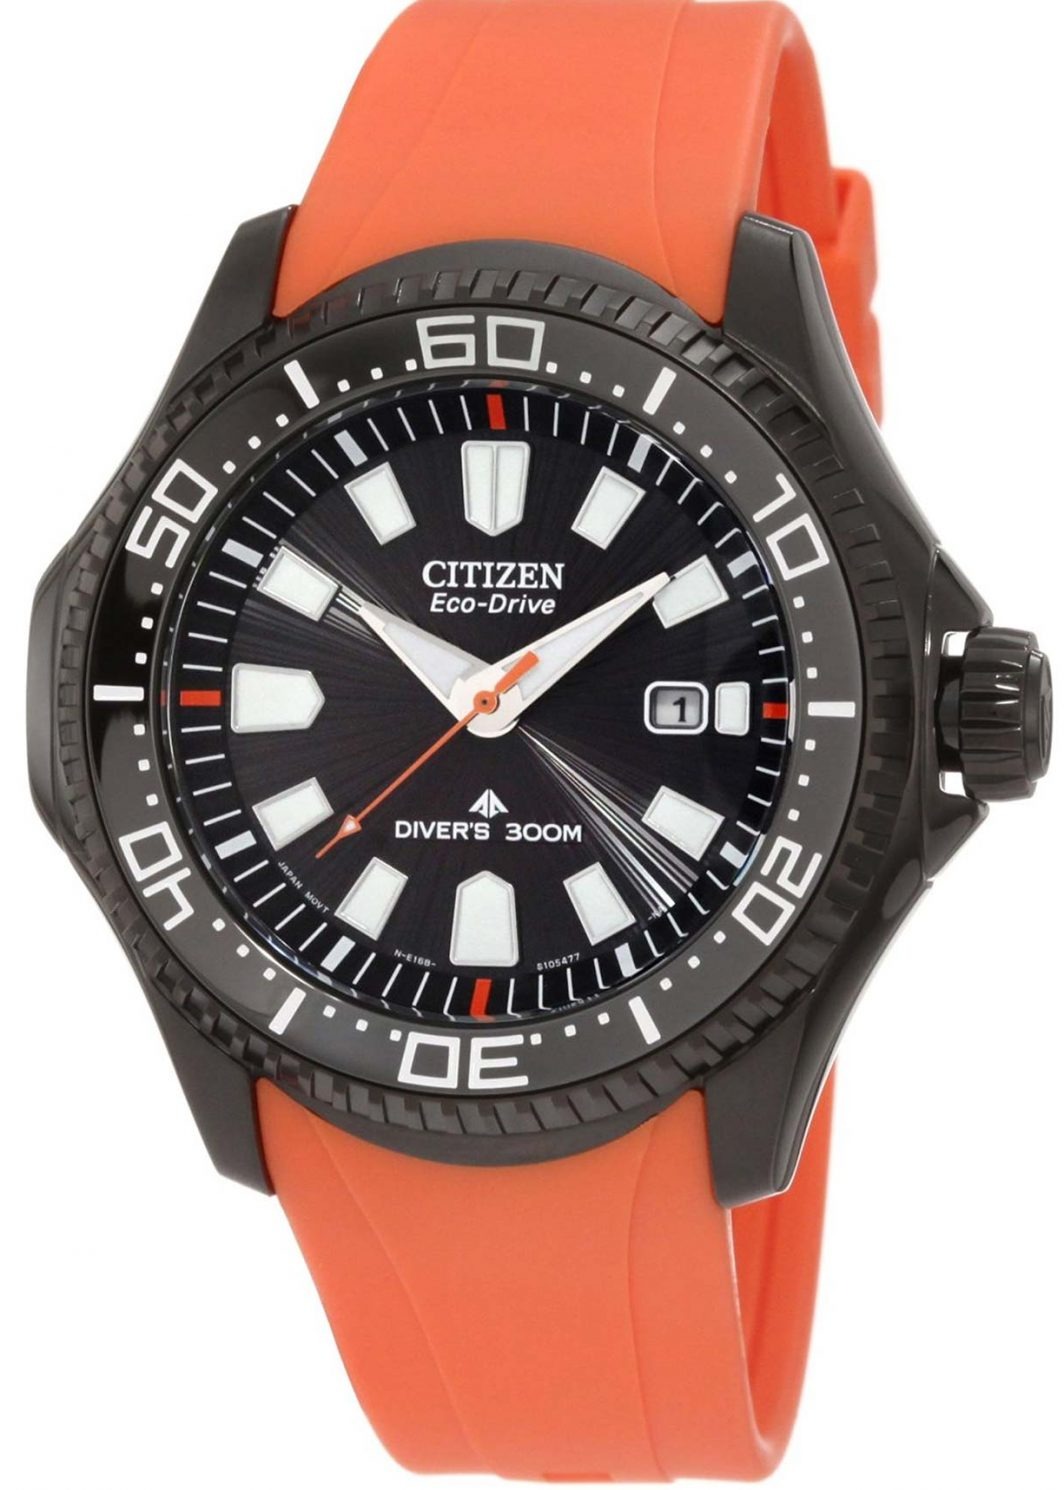 Gent's Promaster Eco-Drive Divers' Watch